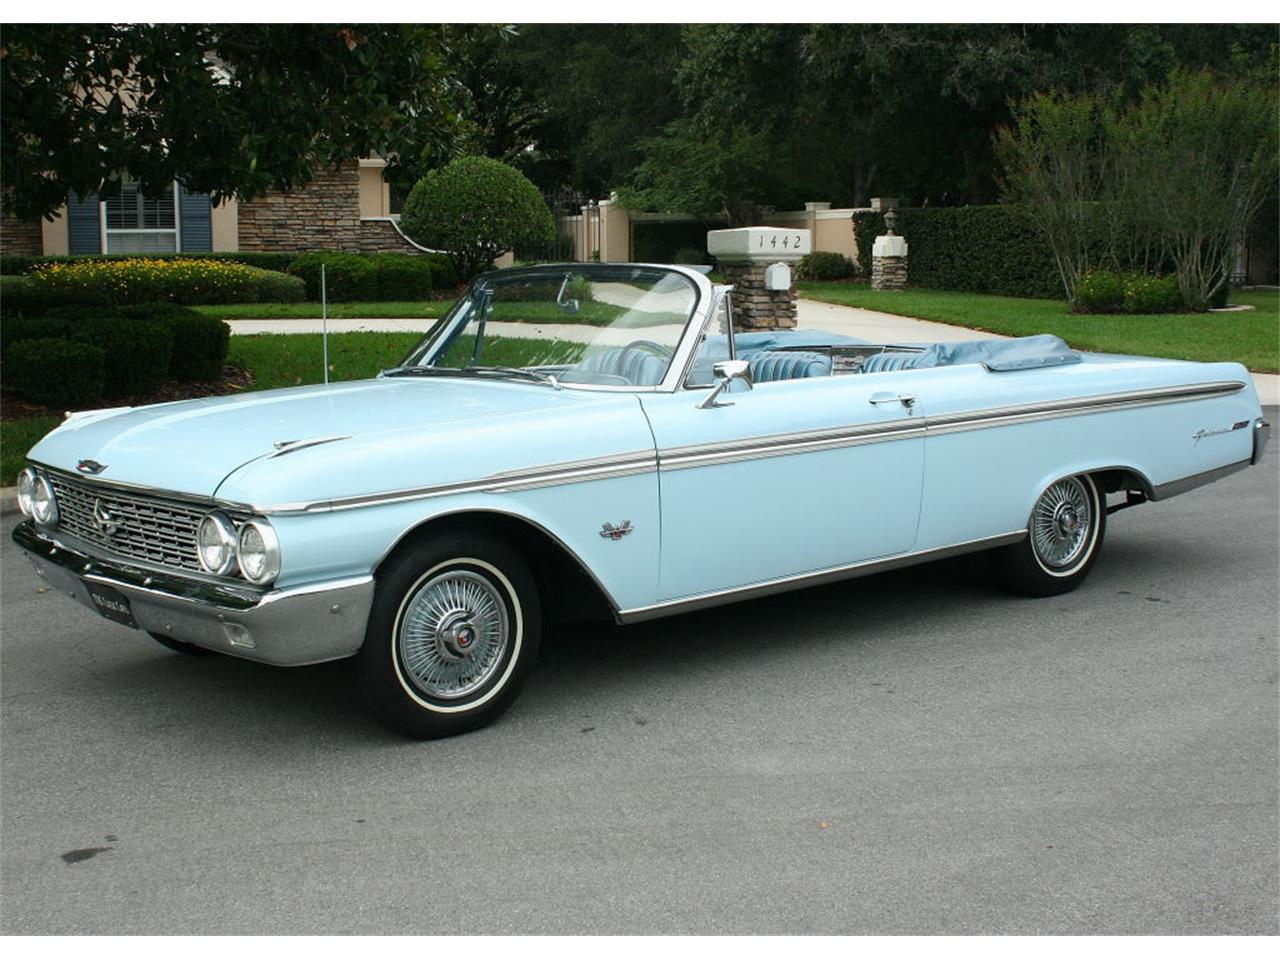 Large Picture of '62 Ford Galaxie located in Florida - $26,500.00 - L6EK